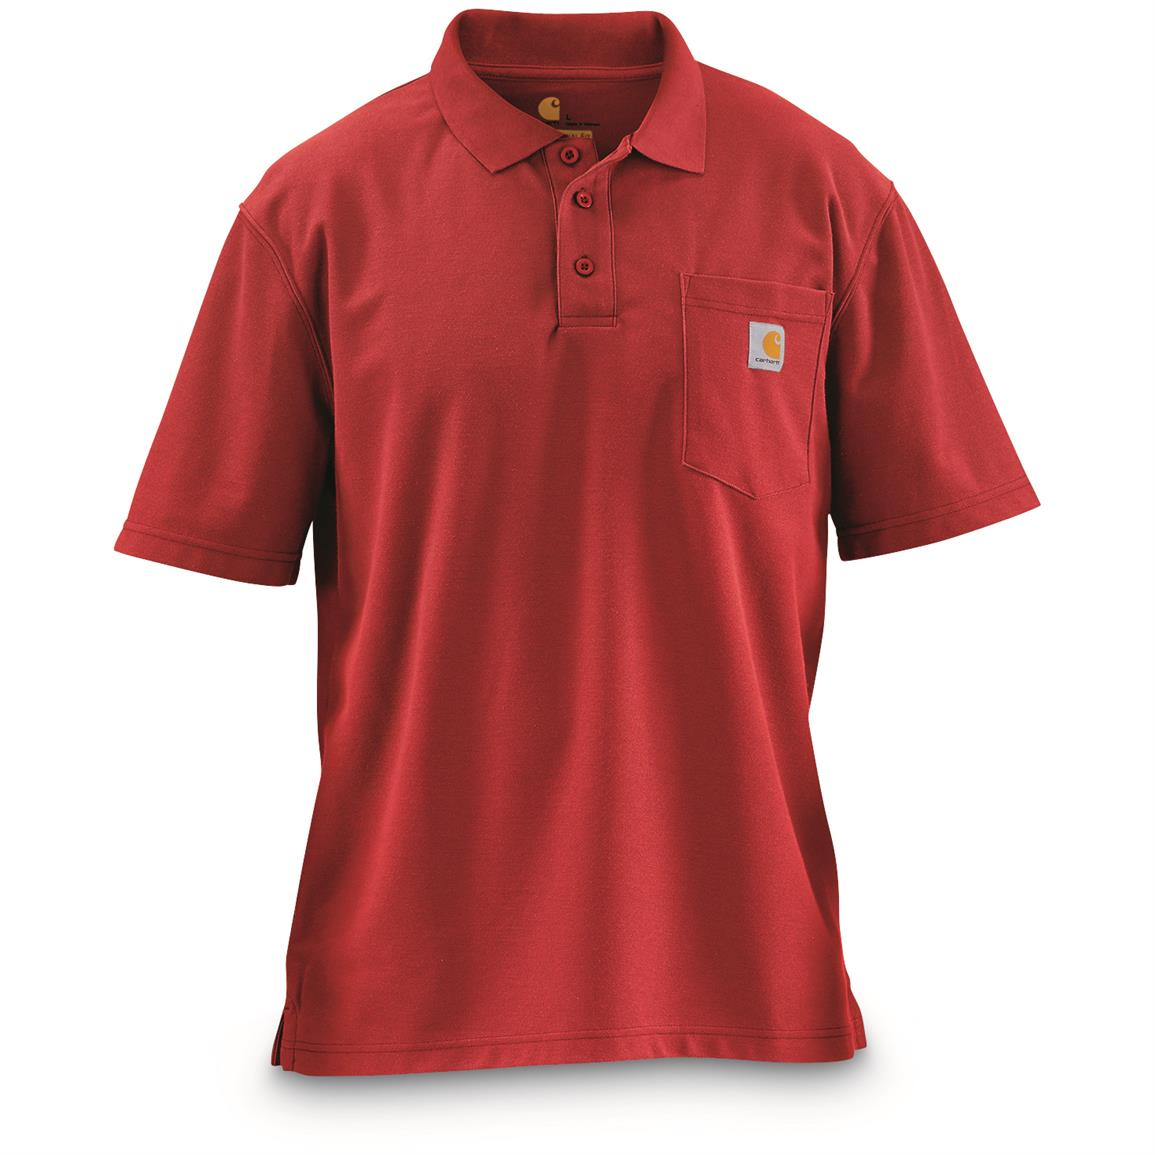 Carhartt Men's Contractor's Work Pocket Polo, Red